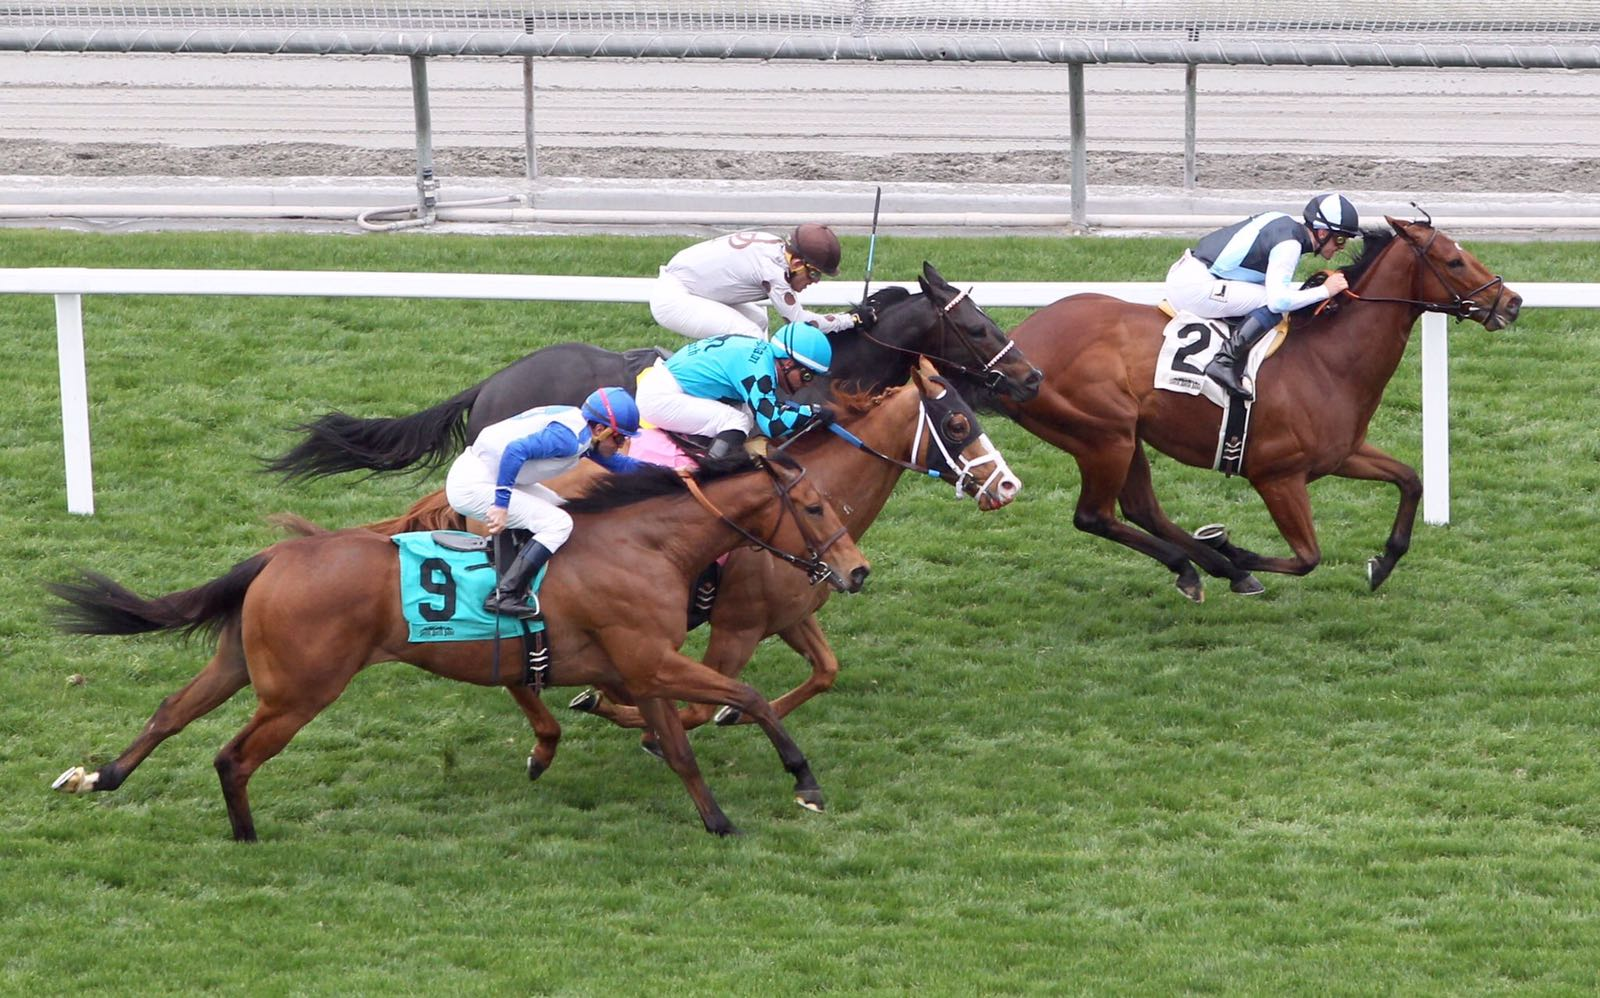 Champagne Charley   A homebred of ours out of mare Age Of Refinement this son of Myboycharlie broke his duck in America on 5th March 2017 in an allowance race at Santa Anita. A lot more to come from him.